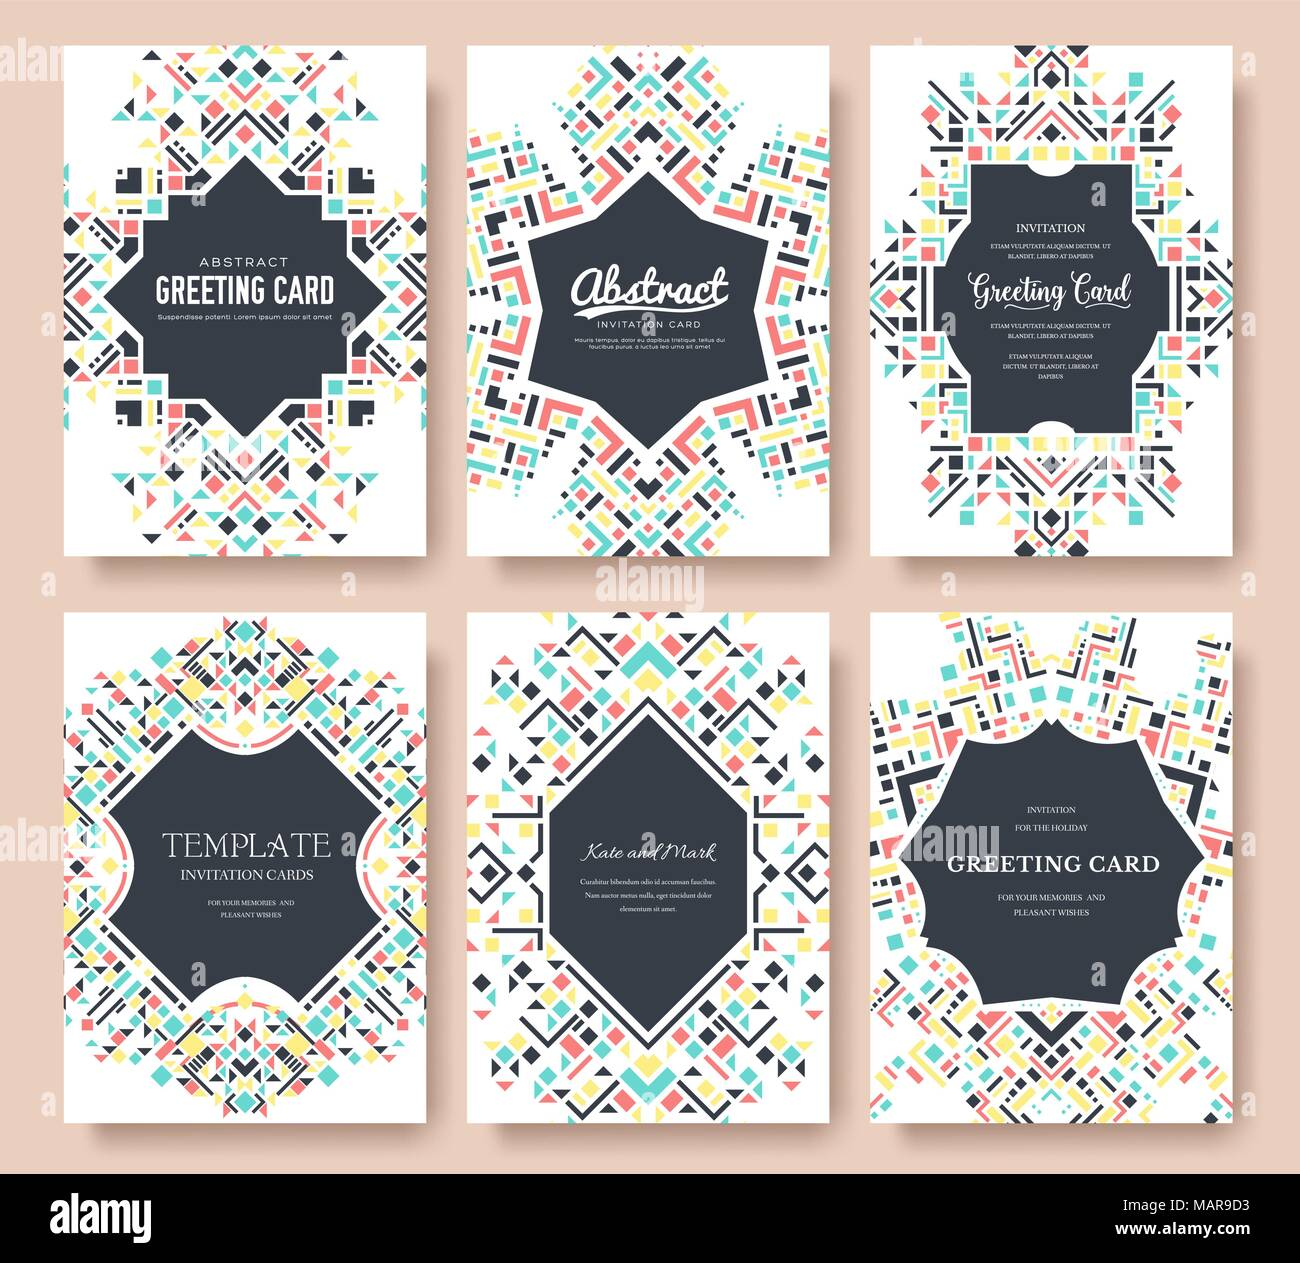 Geometric abstract vector brochure cards set ethnic style template geometric abstract vector brochure cards set ethnic style template of flyear magazines poster book cover banners active lifestyle invitation concept stopboris Choice Image